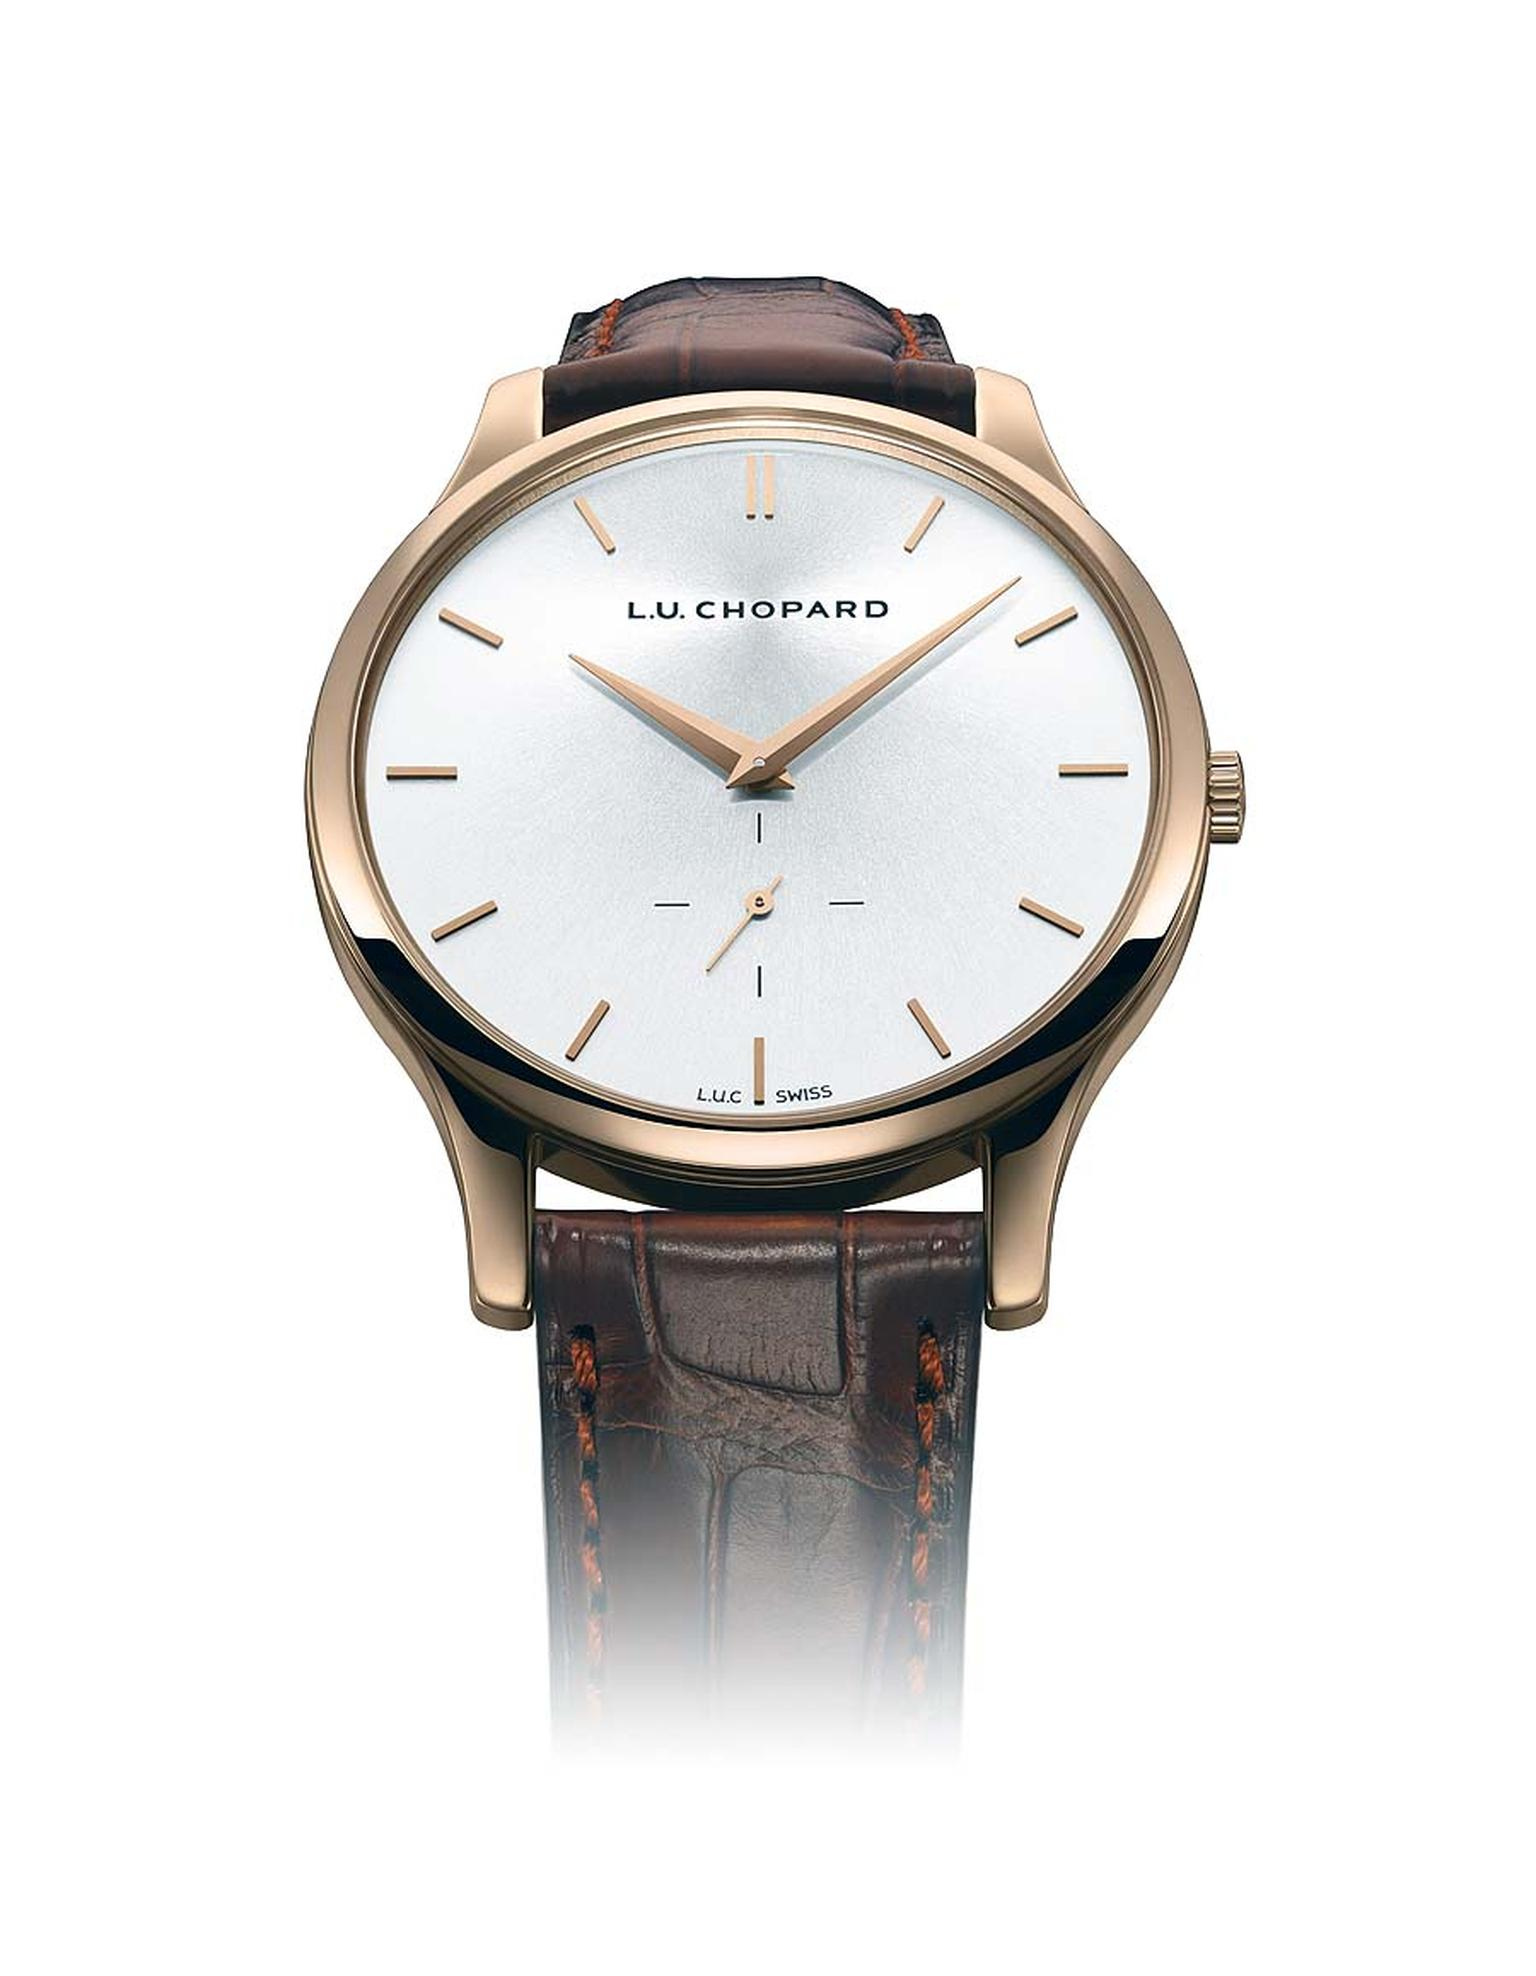 sophistication personified new dress watches for men launched at dresswatchesbaselworld001